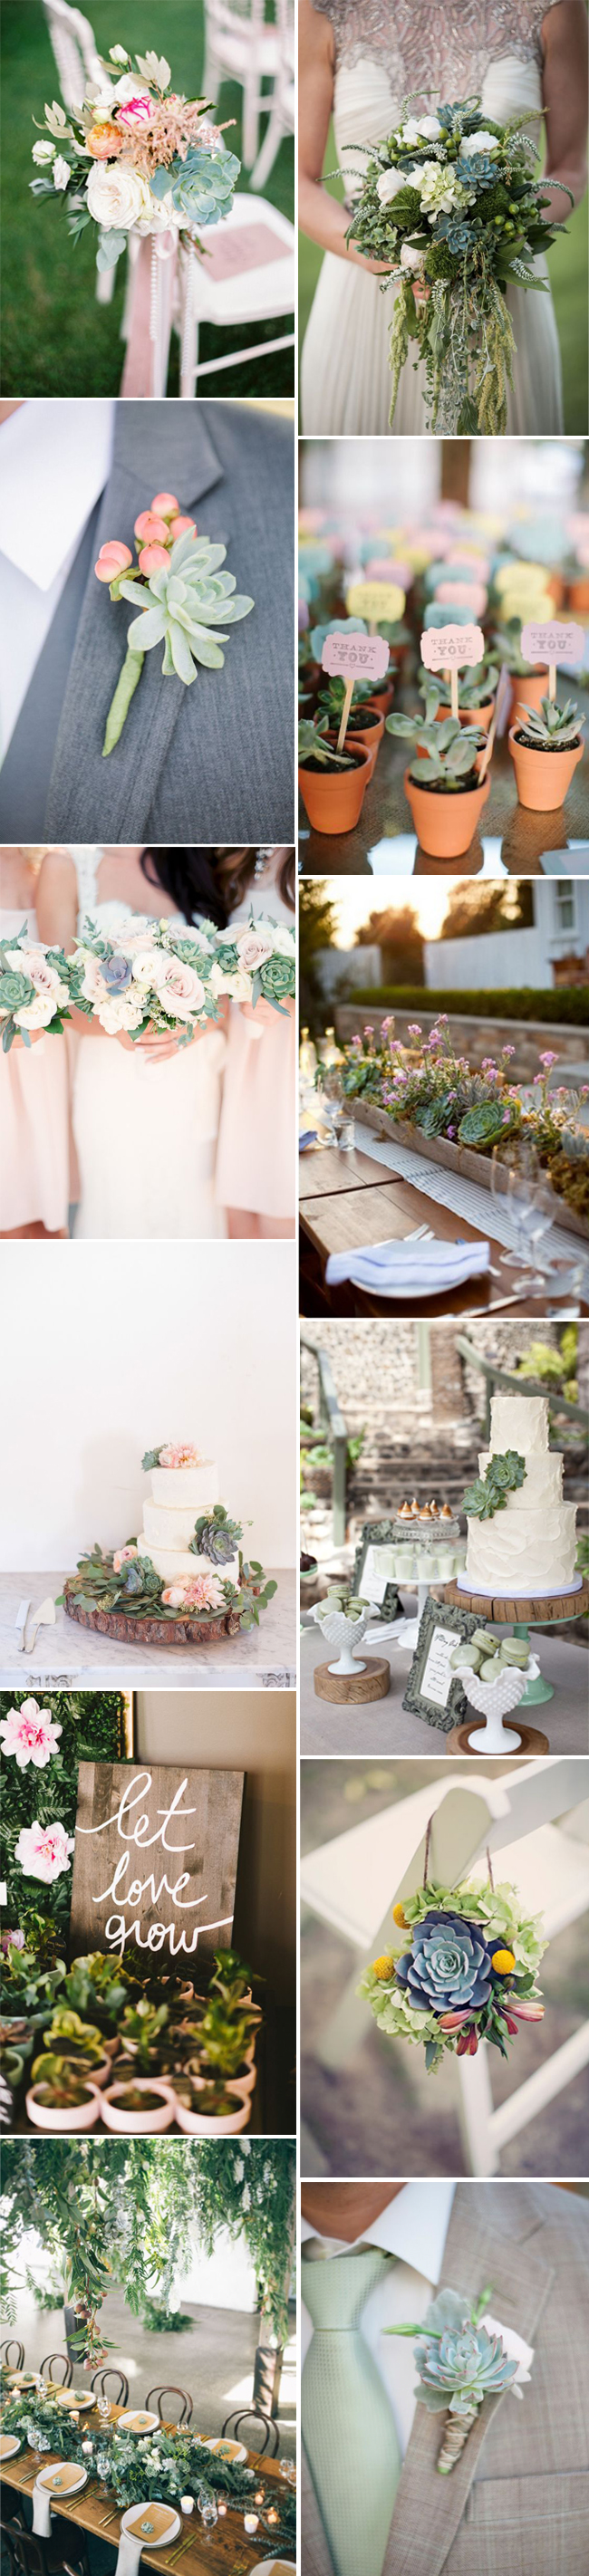 succulents-wedding-decor